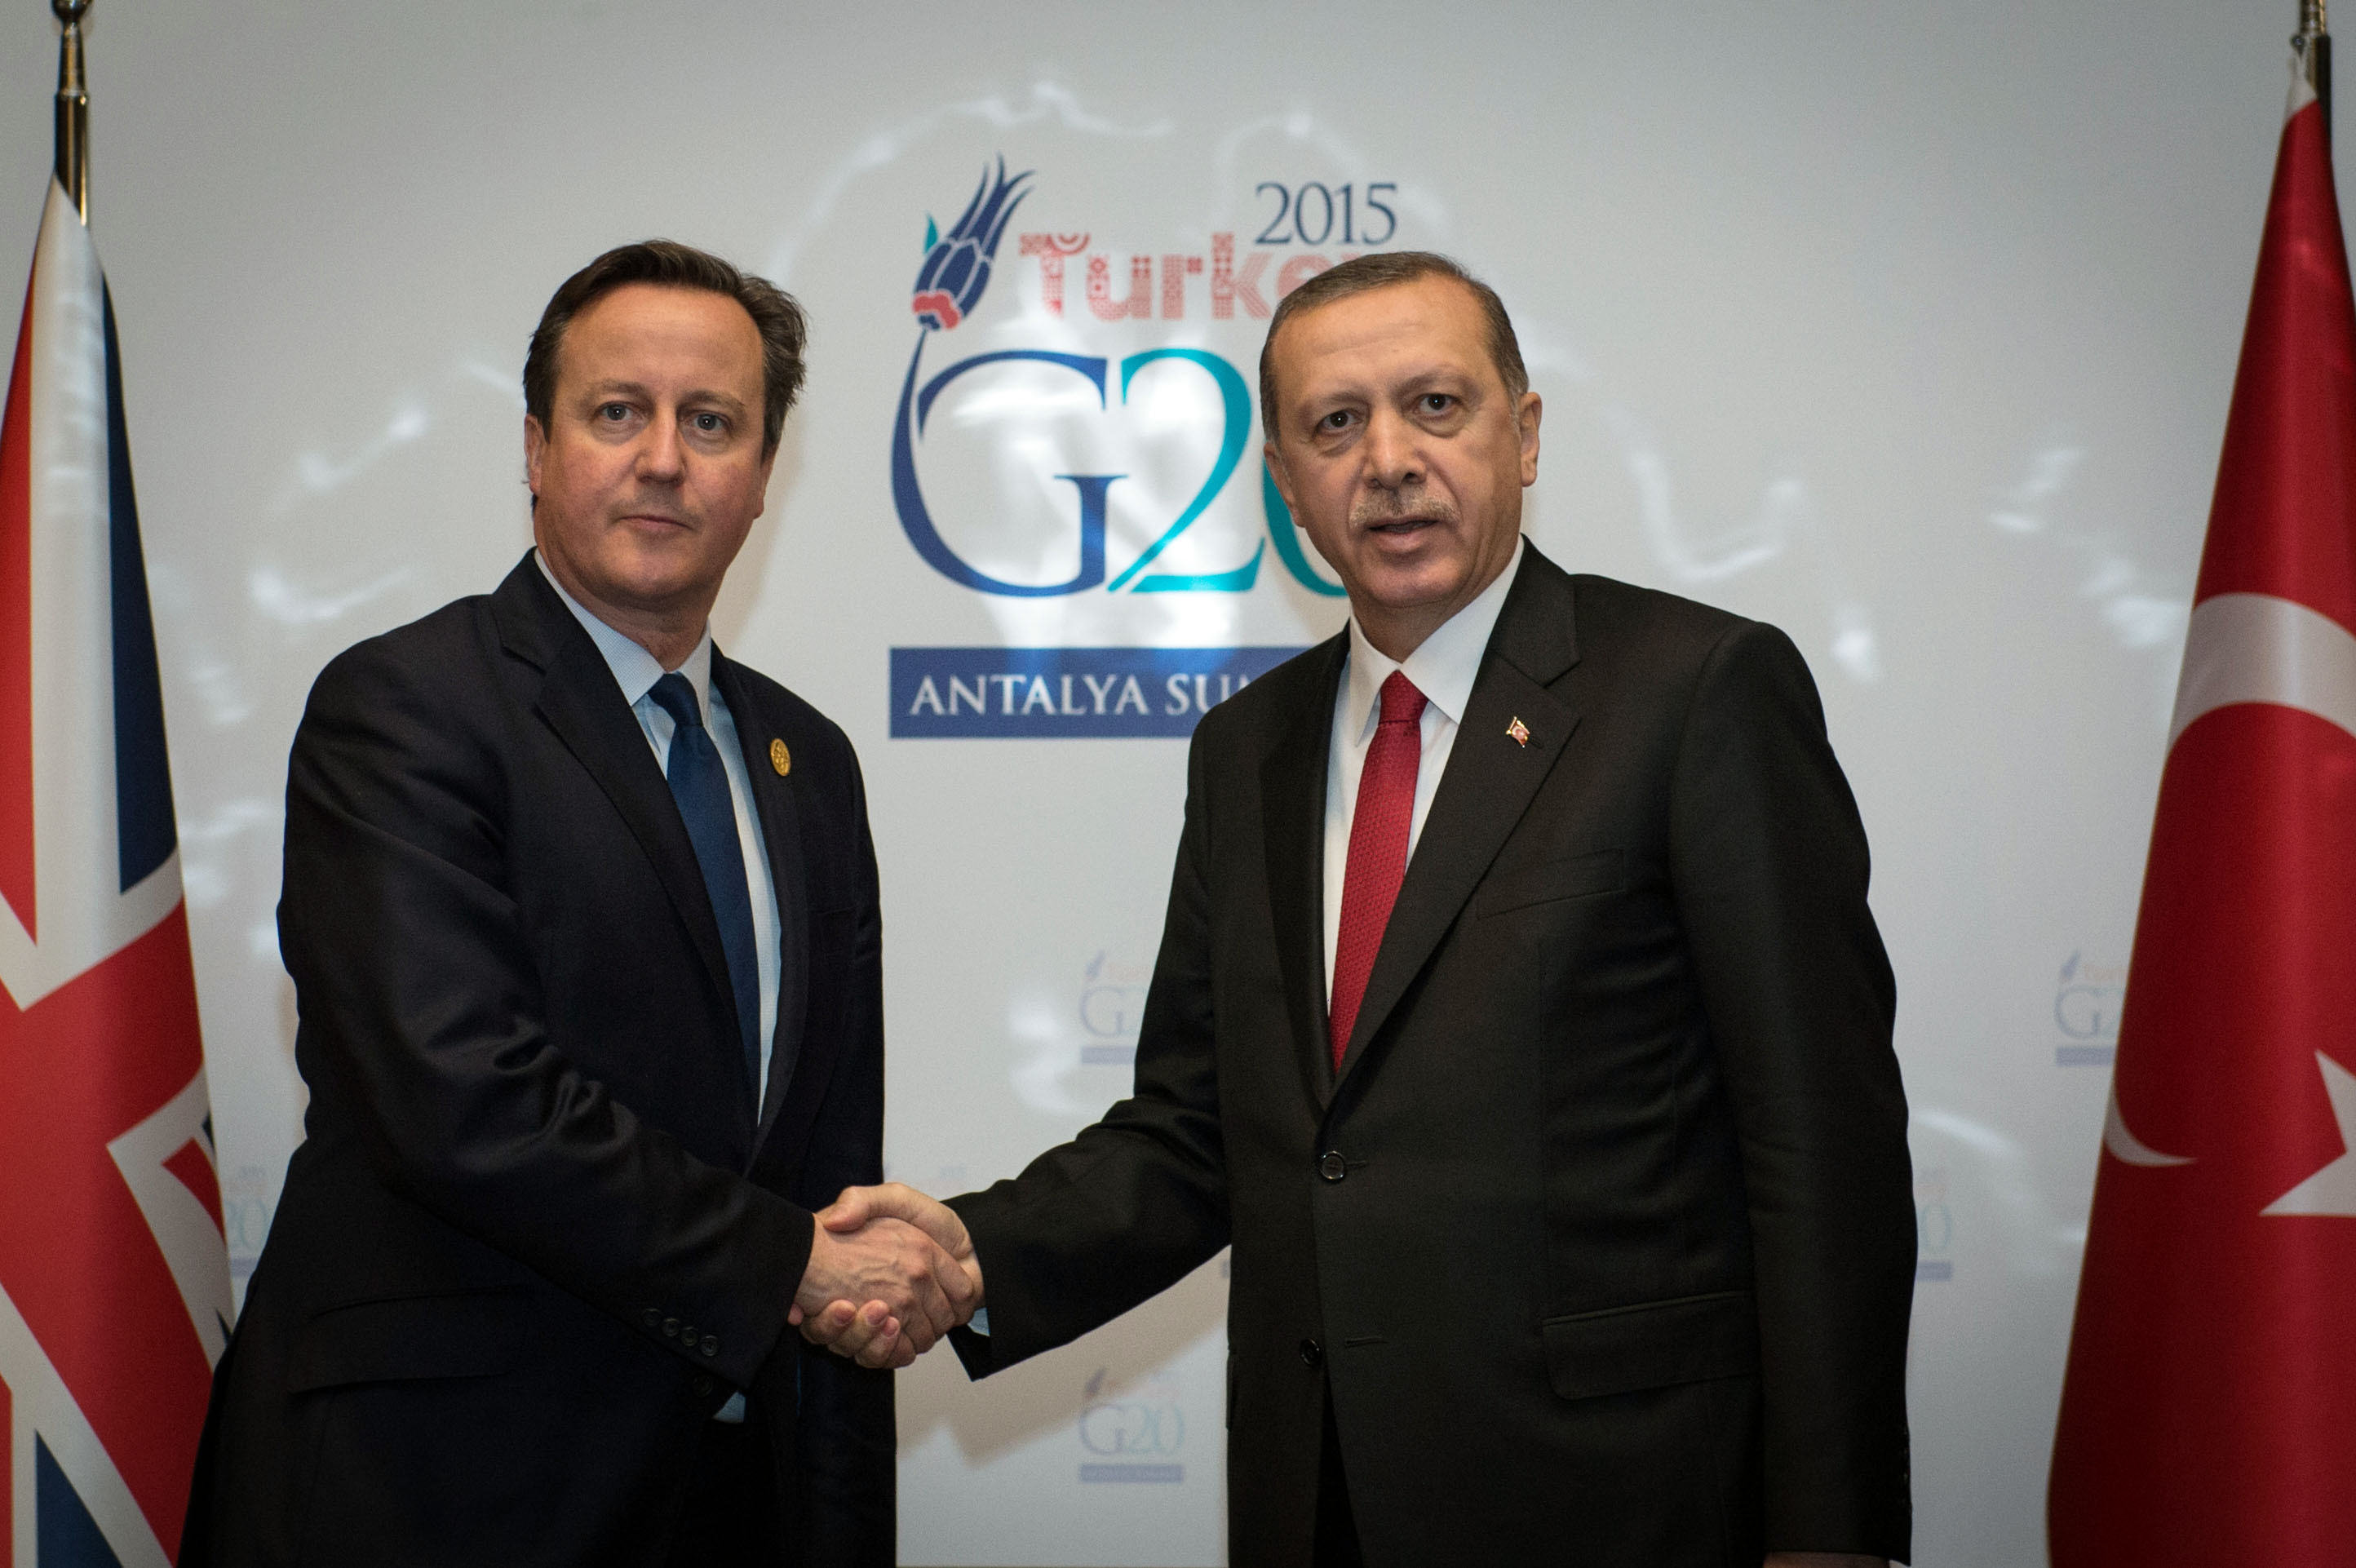 G20 meeting - Antalya